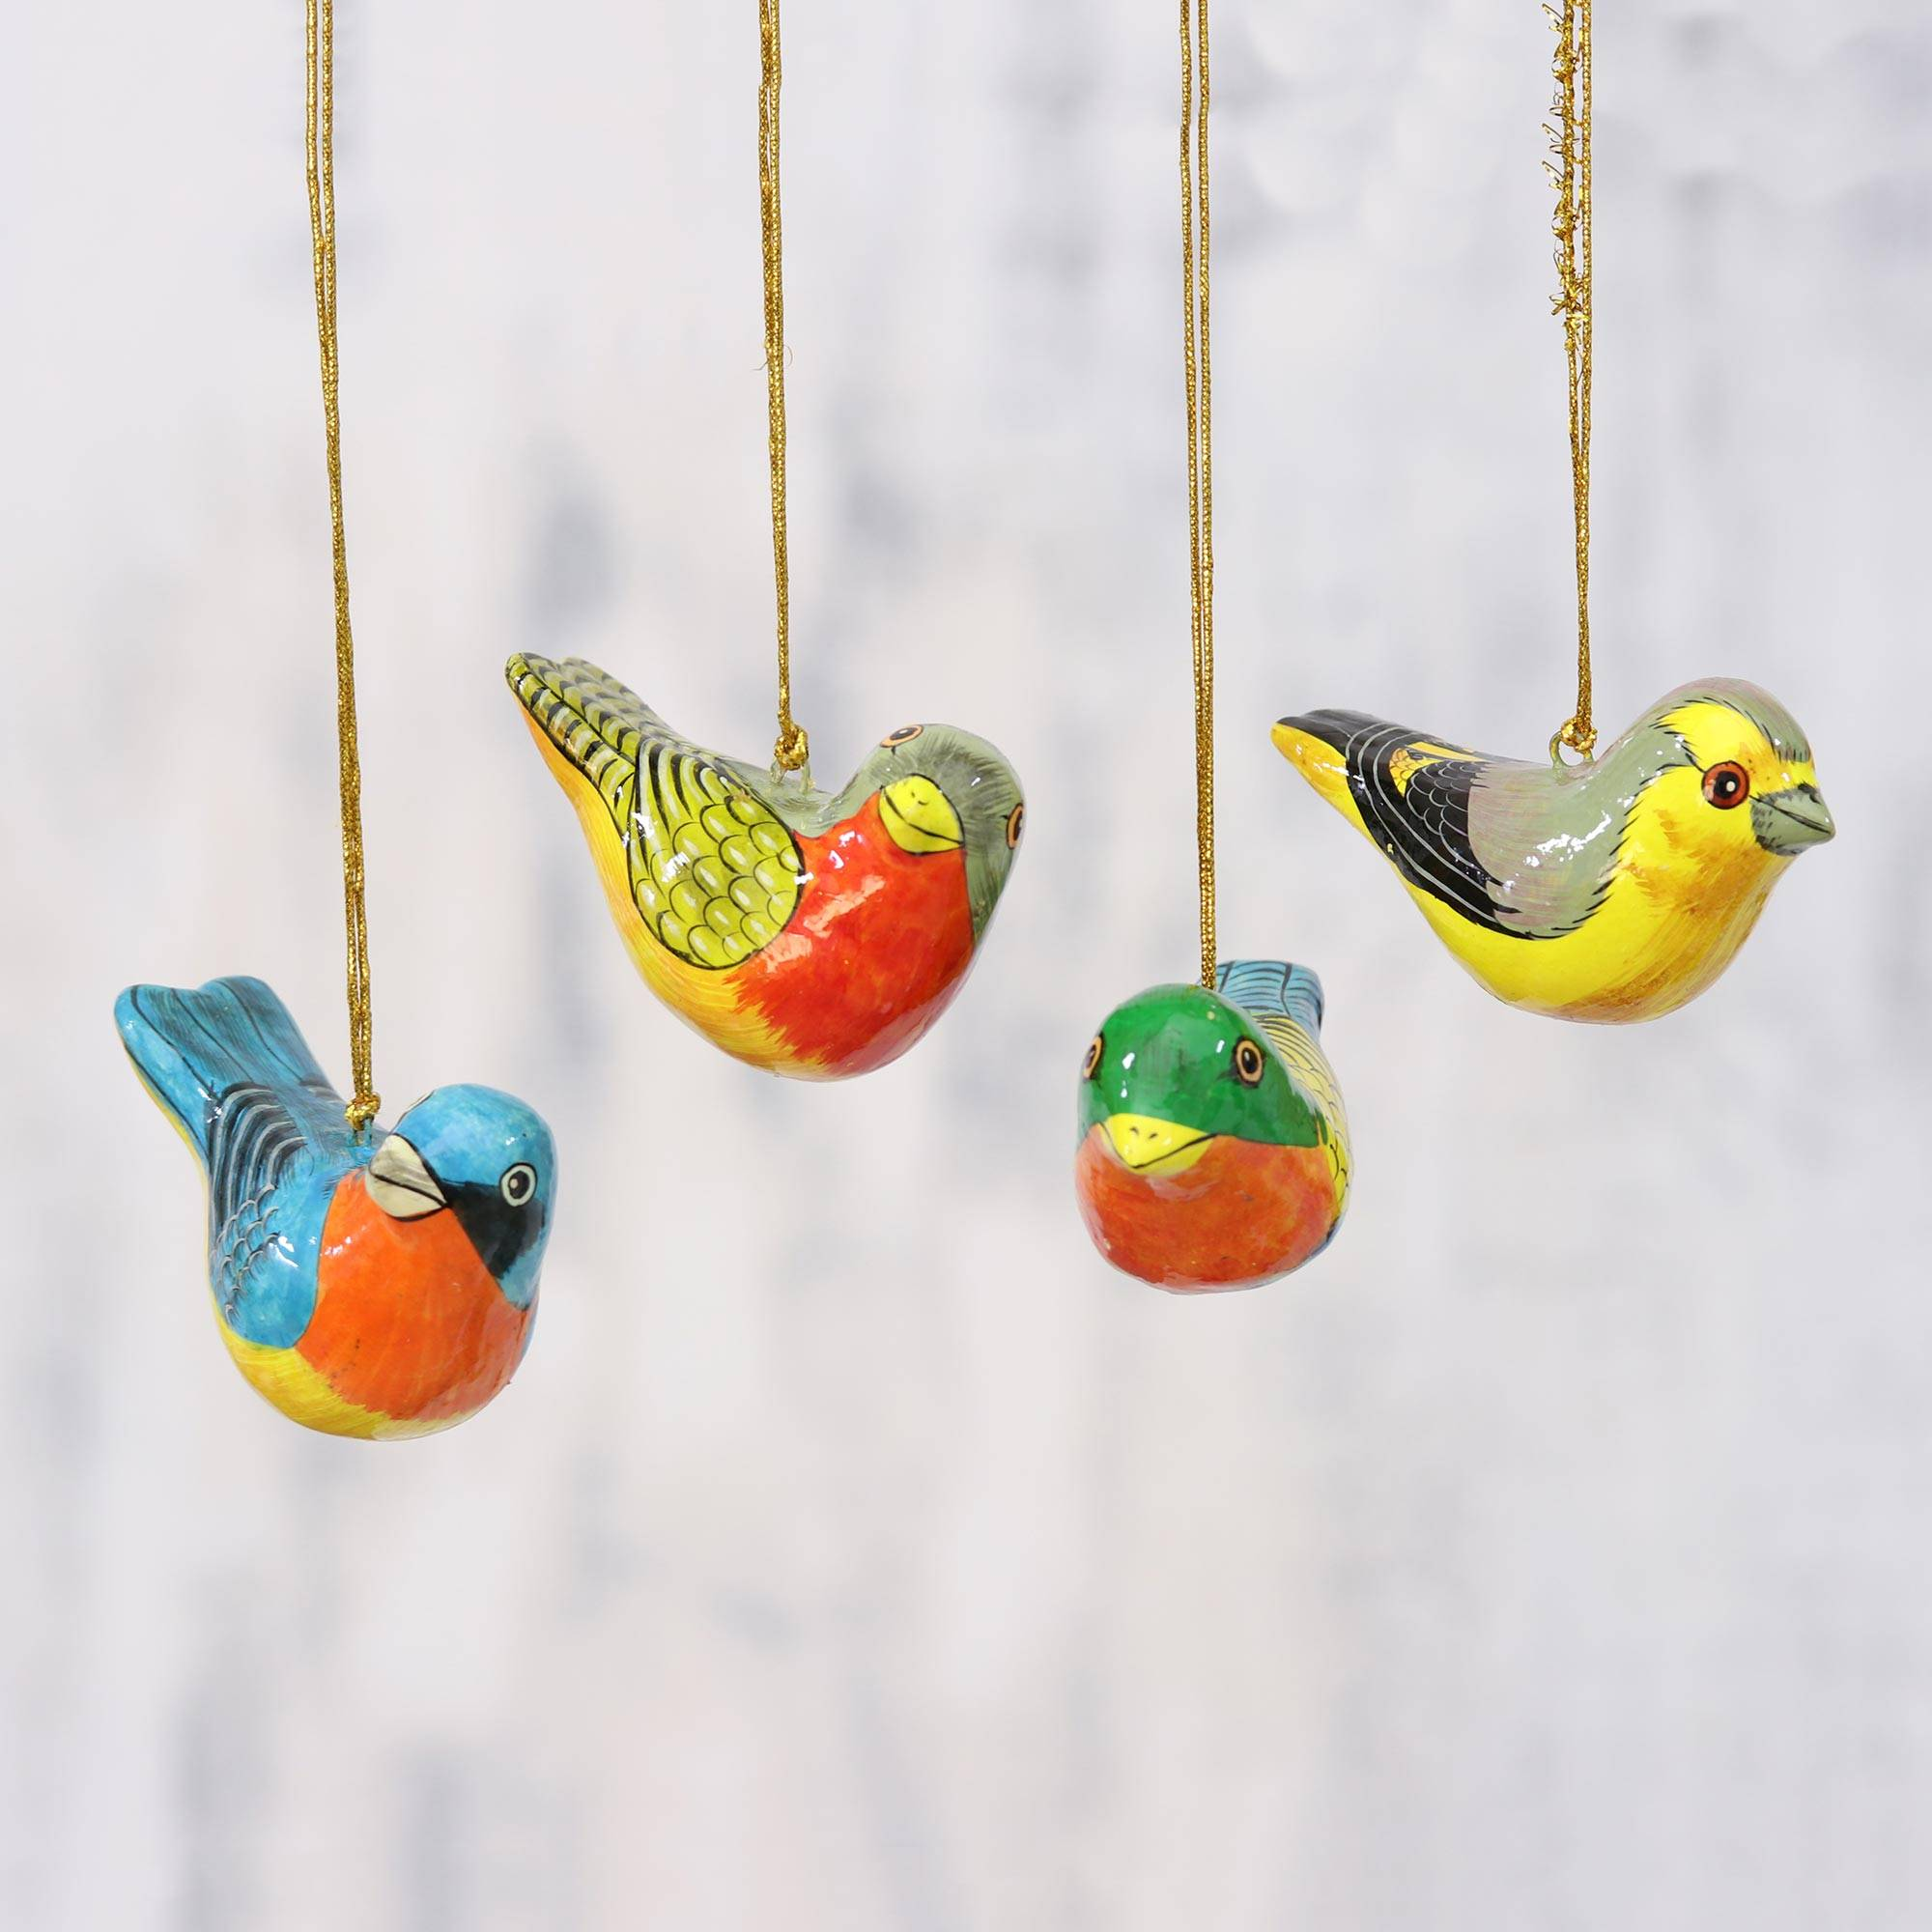 Four Colorful Papier Mache Bird Ornaments from India, 'Chirping Sparrows'